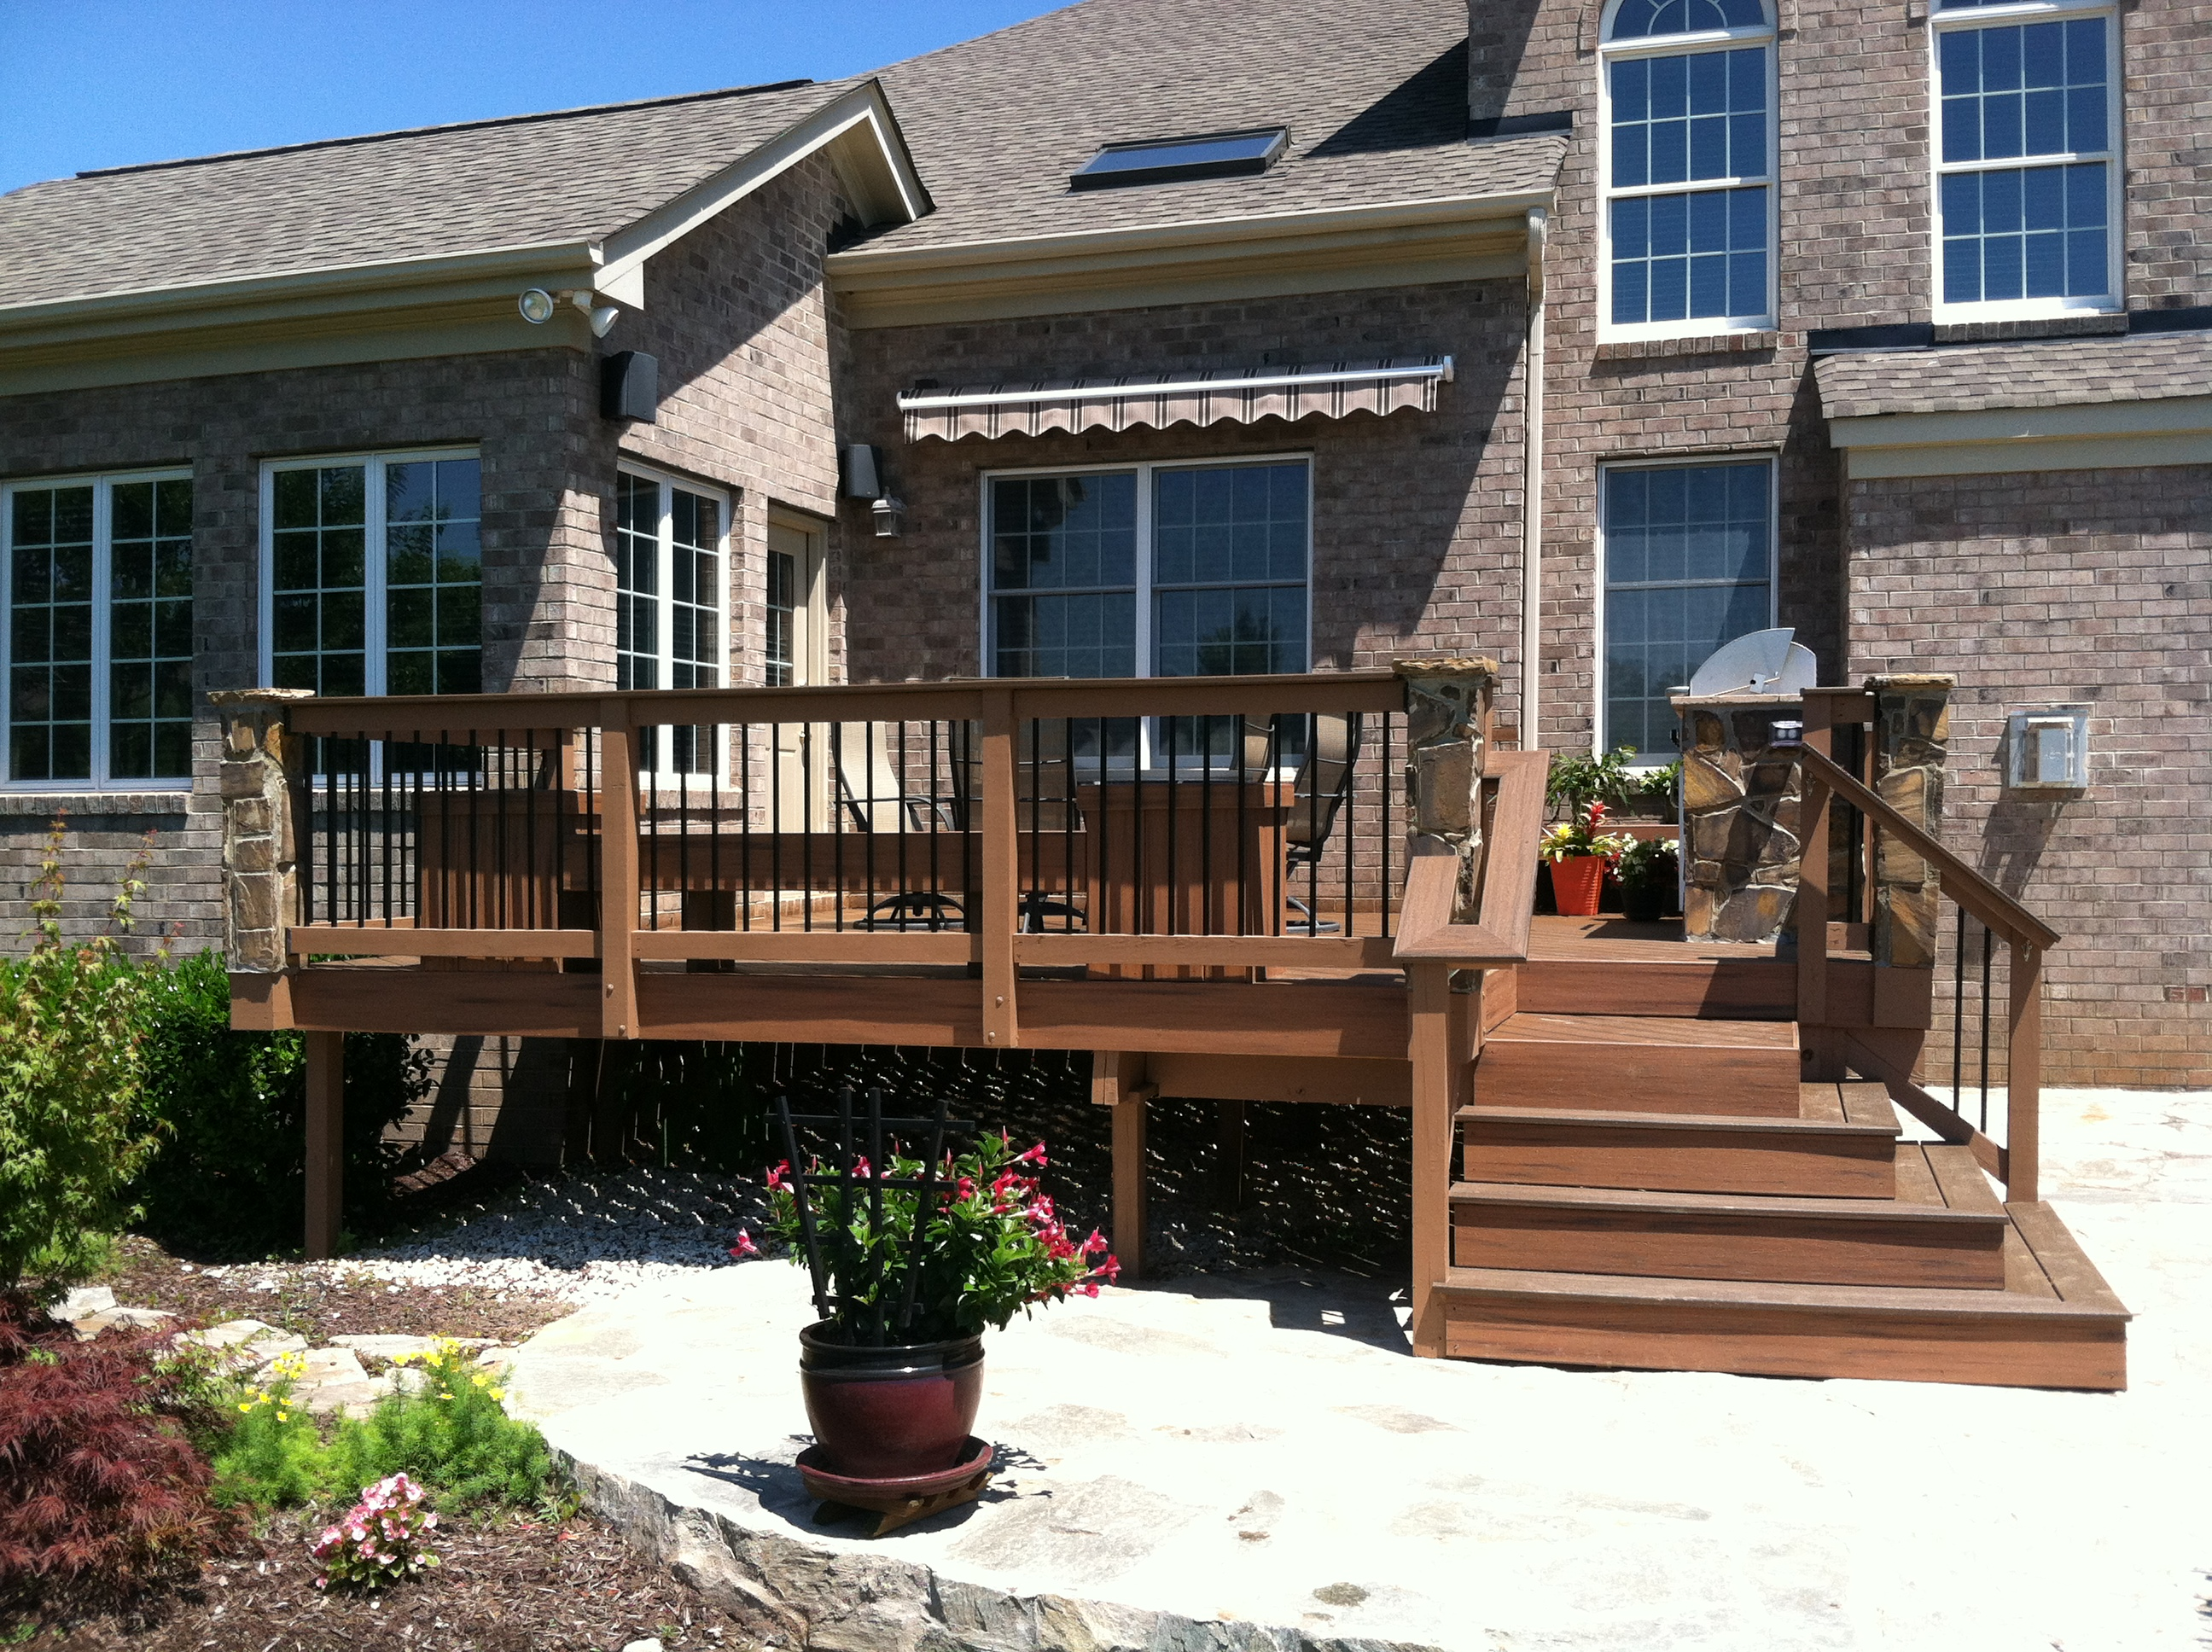 archadeck of charlotte designed and built this trex tropics spiced rum composite deck - Trex Deck Design Ideas